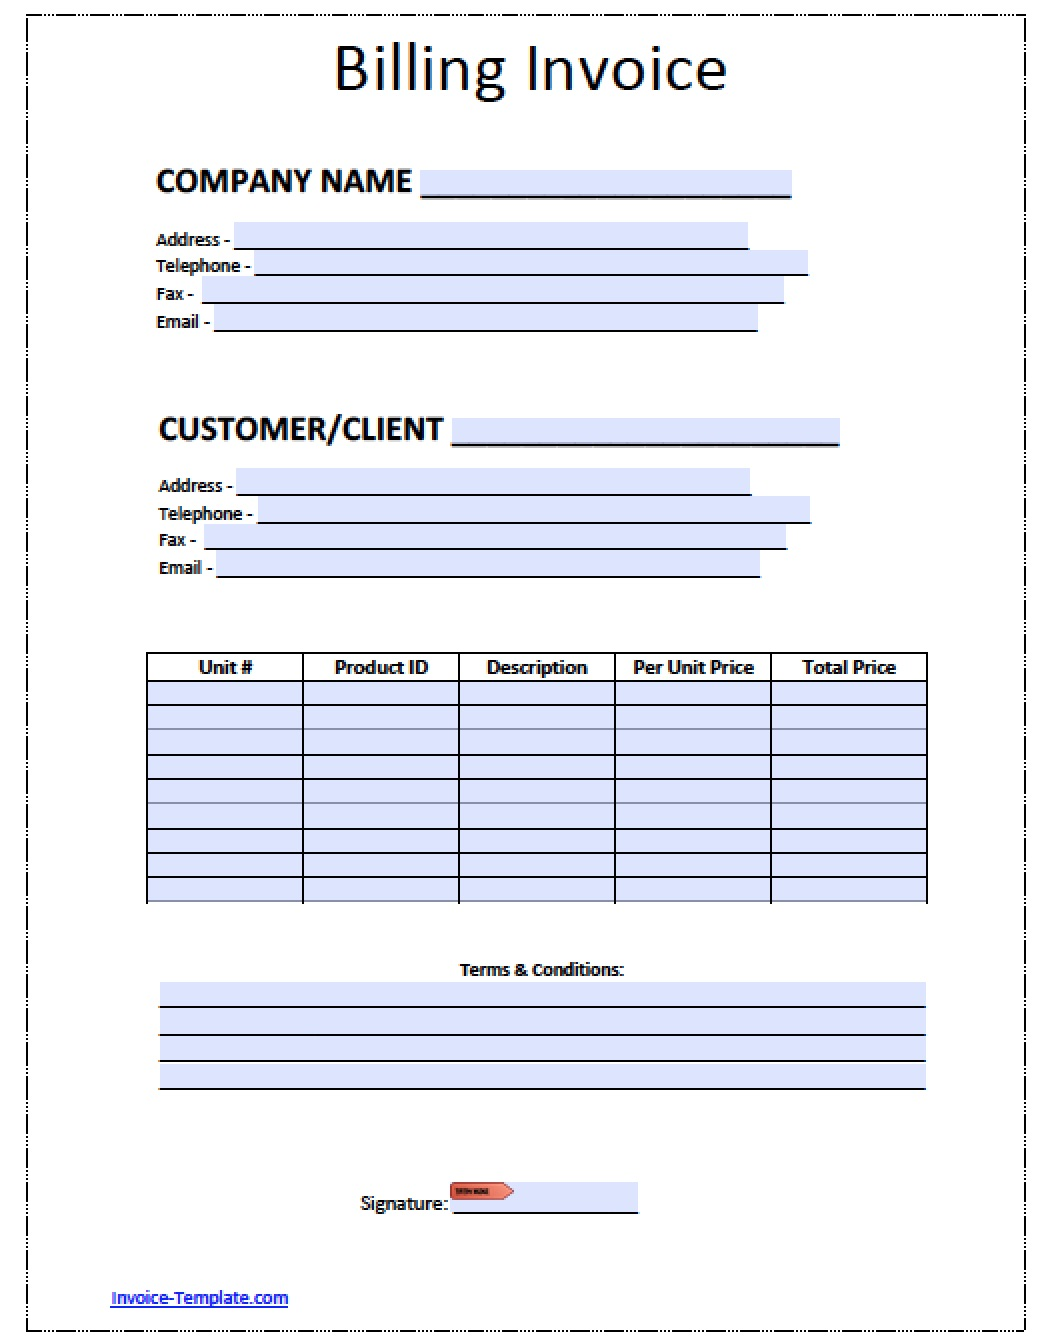 Free Billing Invoice Template Excel PDF Word Doc - How to make invoice on excel best online clothing stores